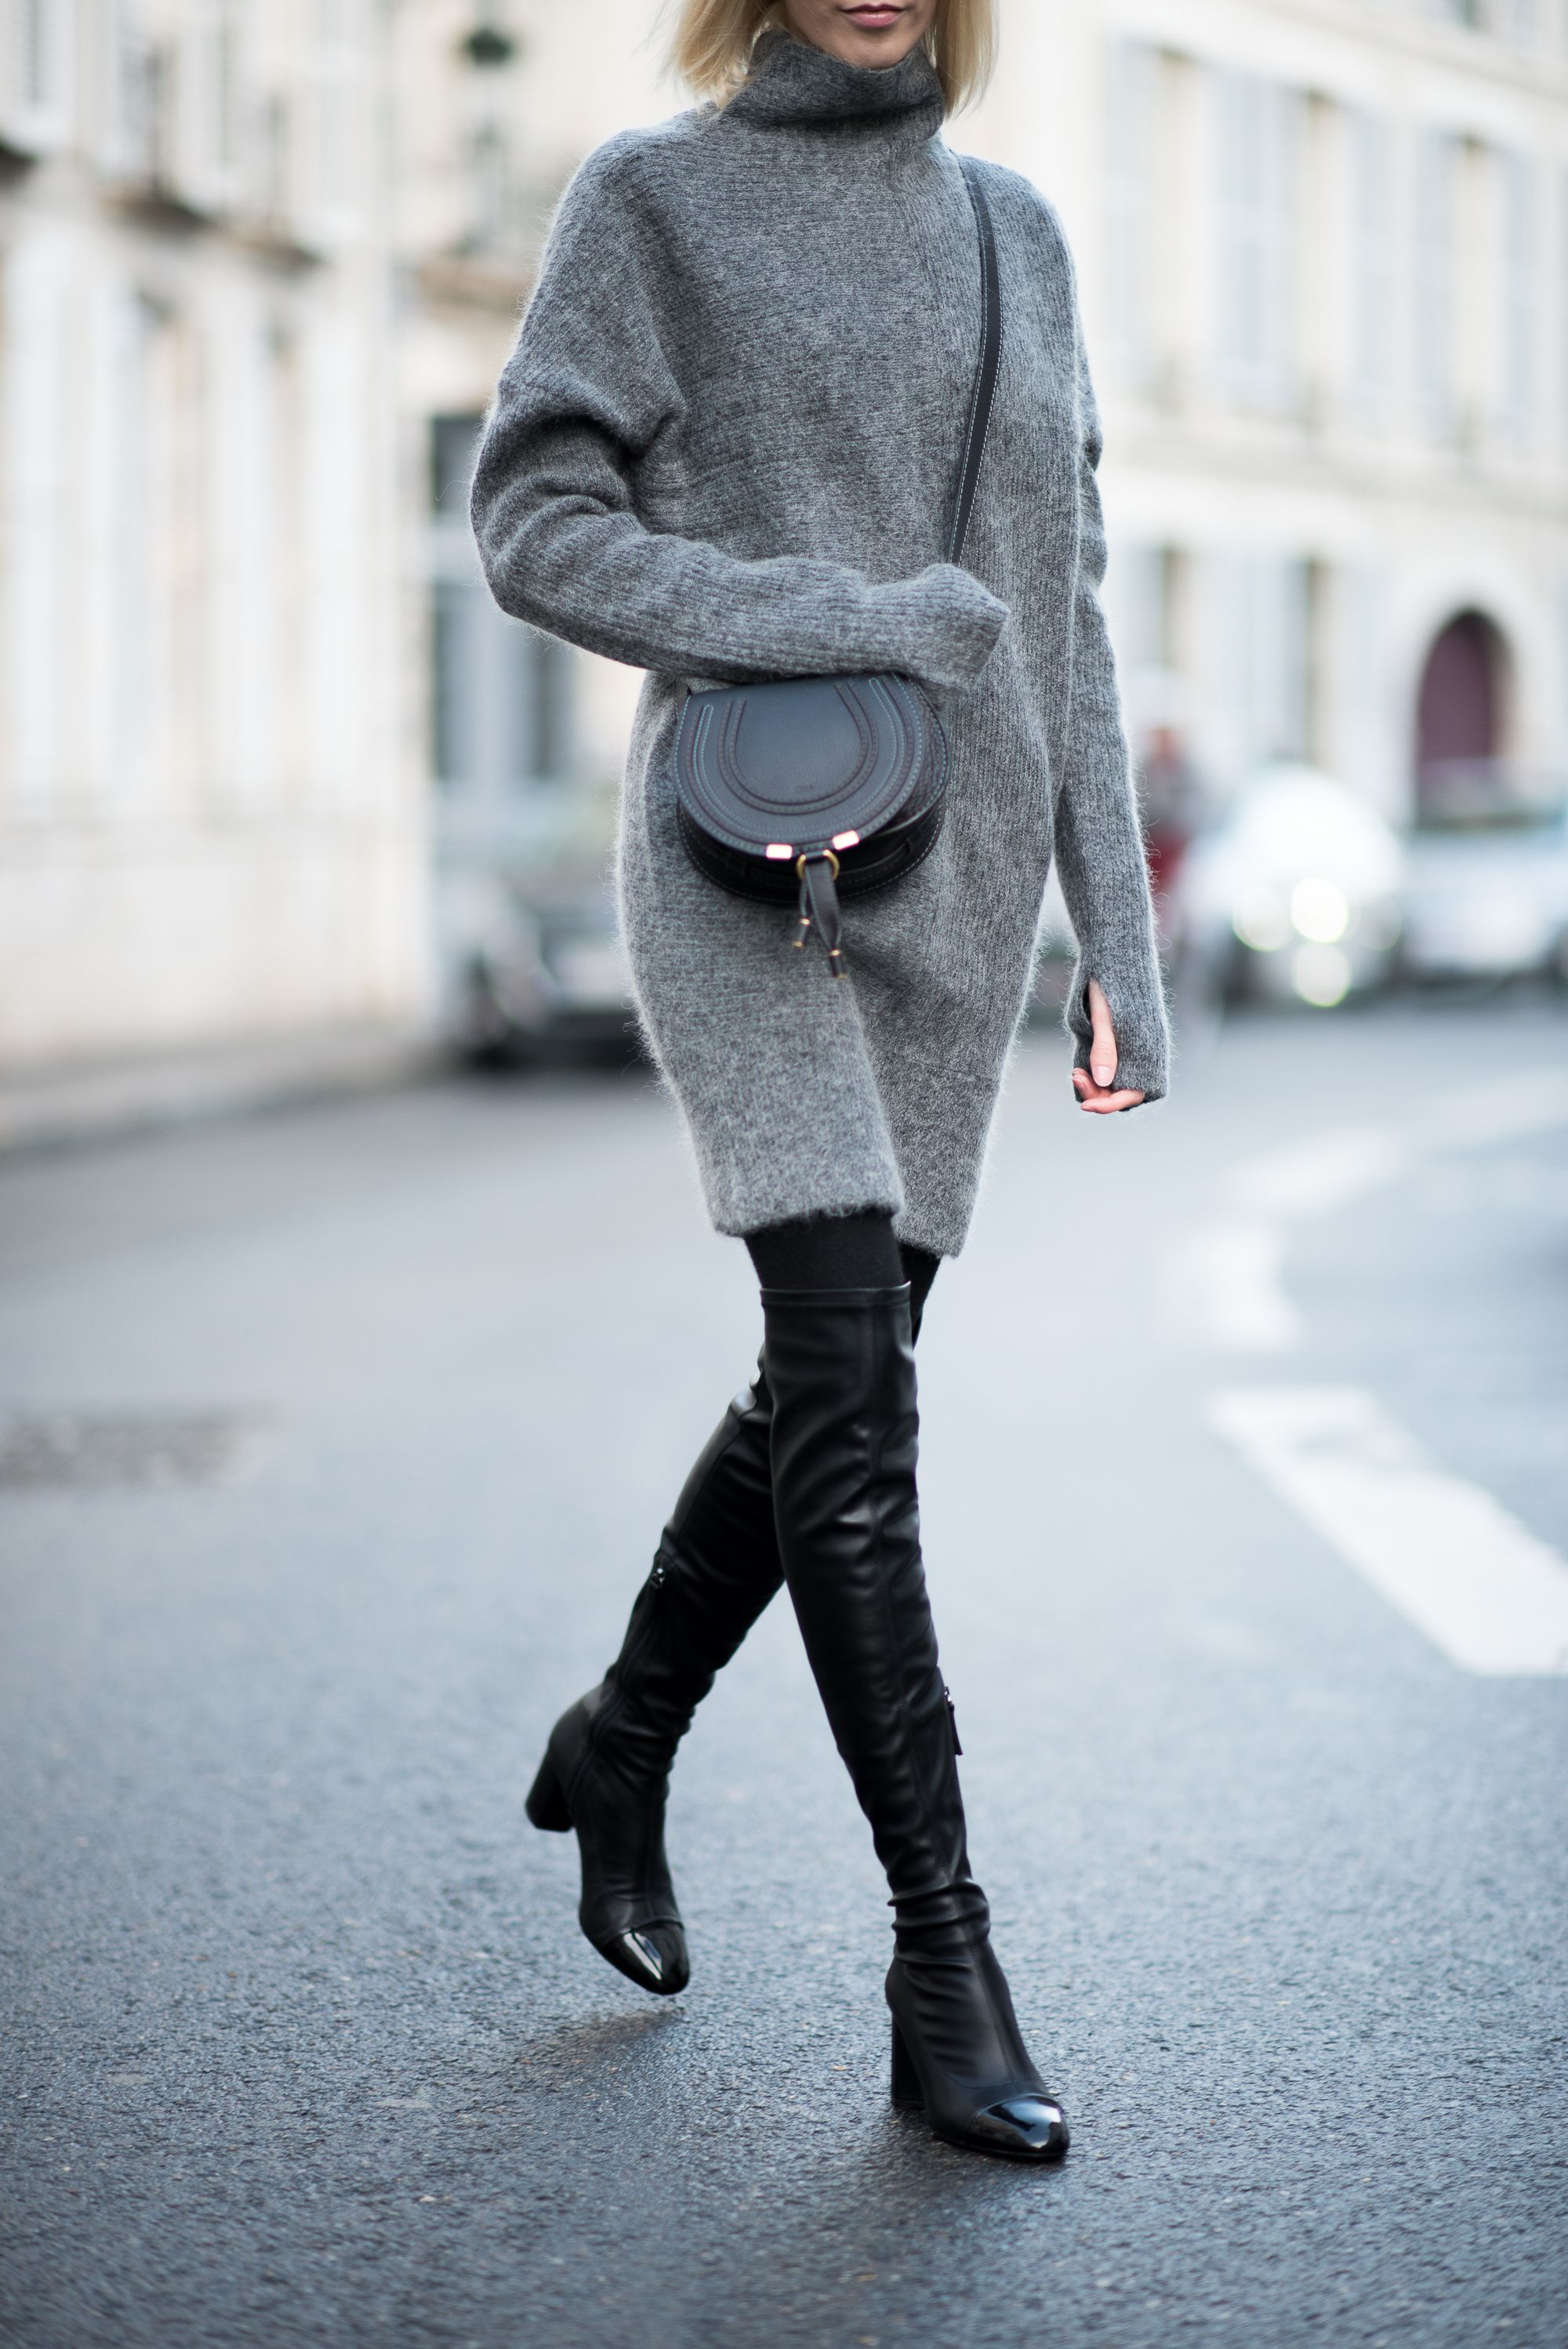 Knitted dress + over the knee boots Anna Sofia Style